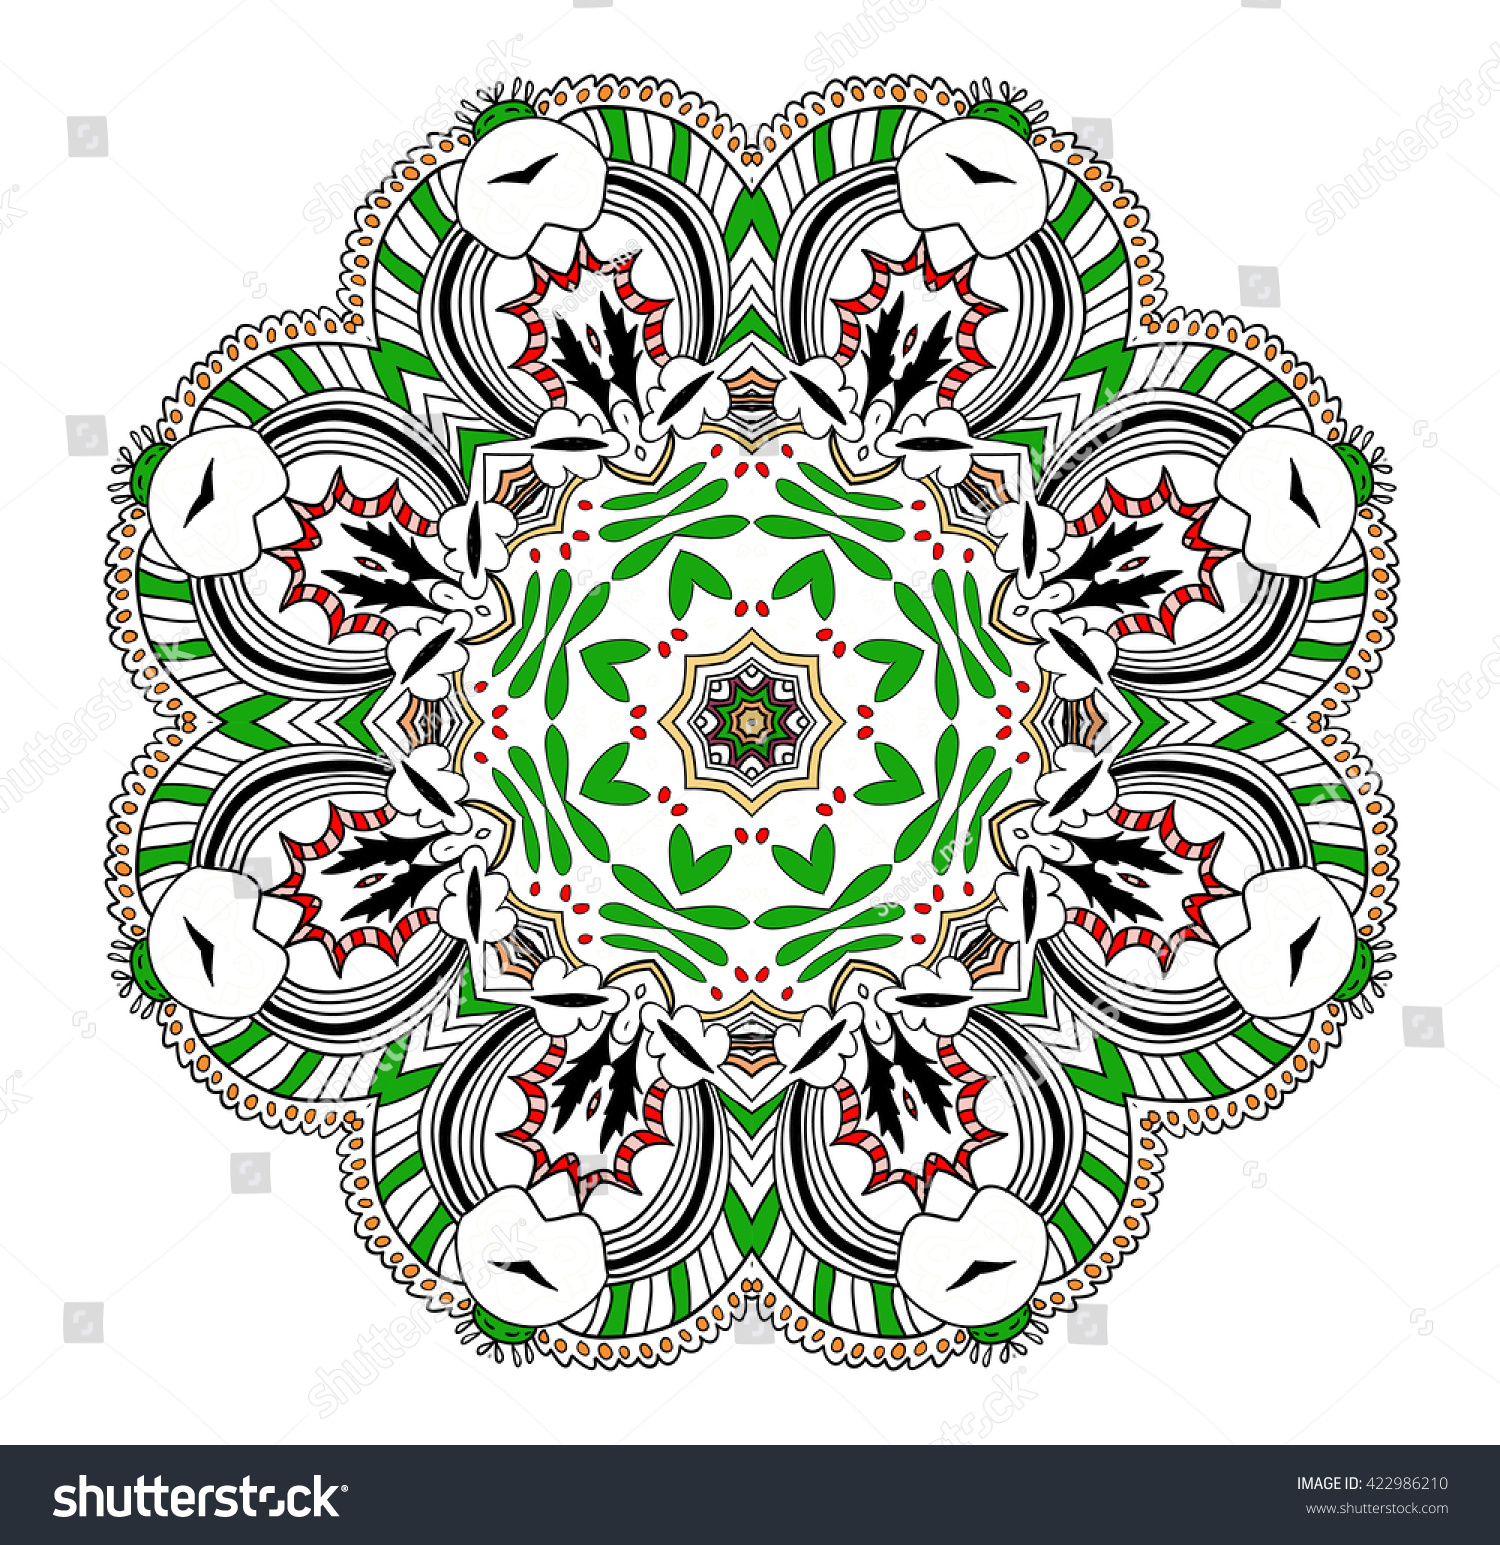 Partly Uncolored Mandala Red Green Elements Stock Vector 422986210 ...